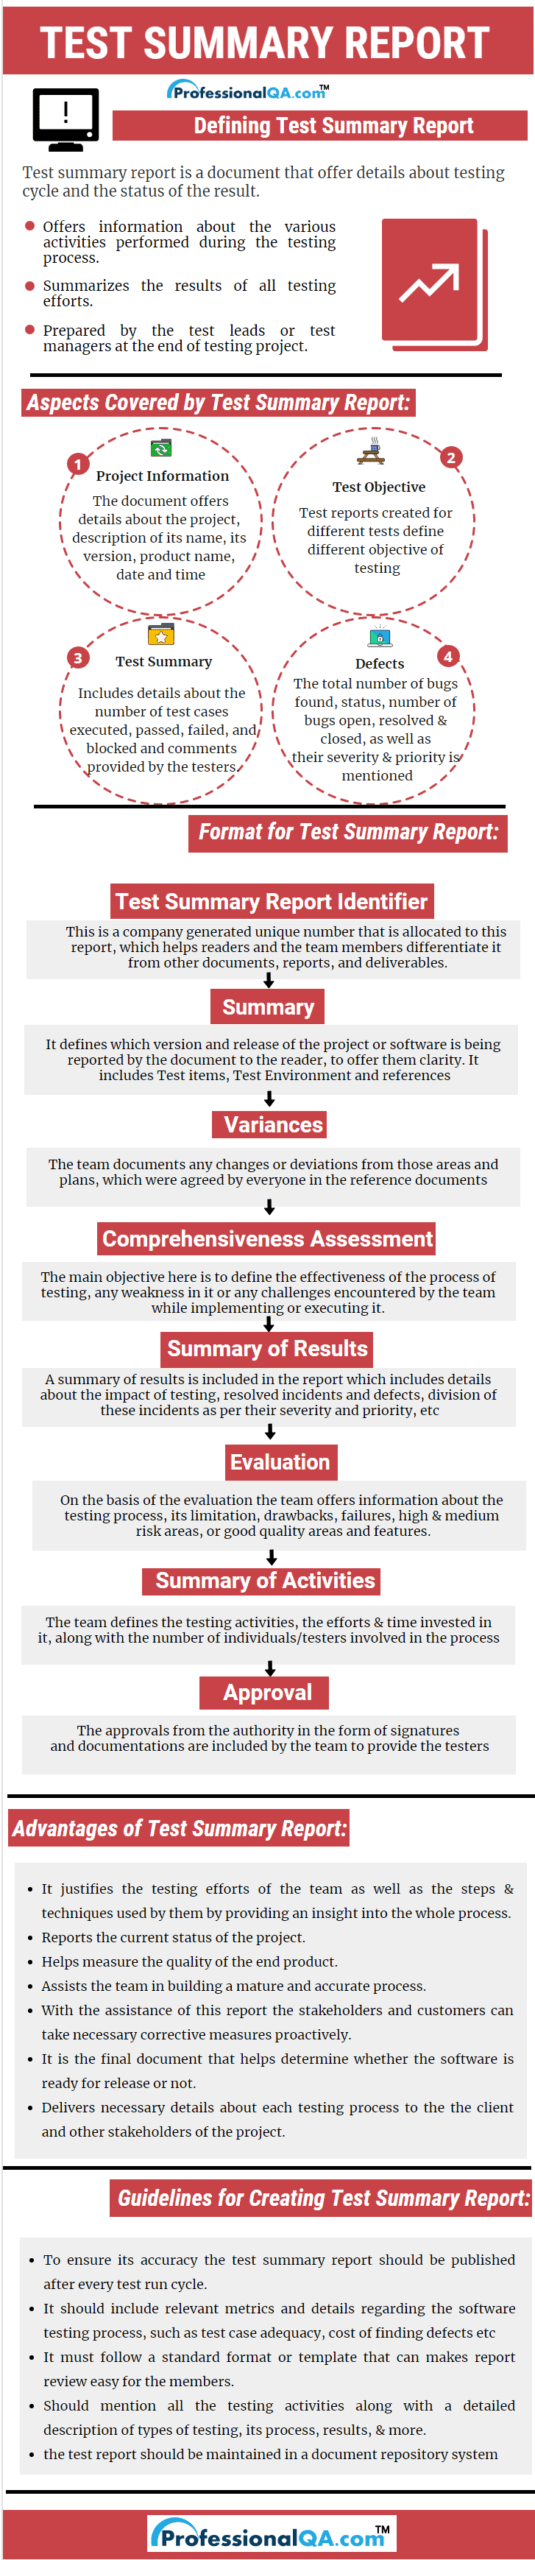 Test Summary Report |Professionalqa With Regard To Test Summary Report Template